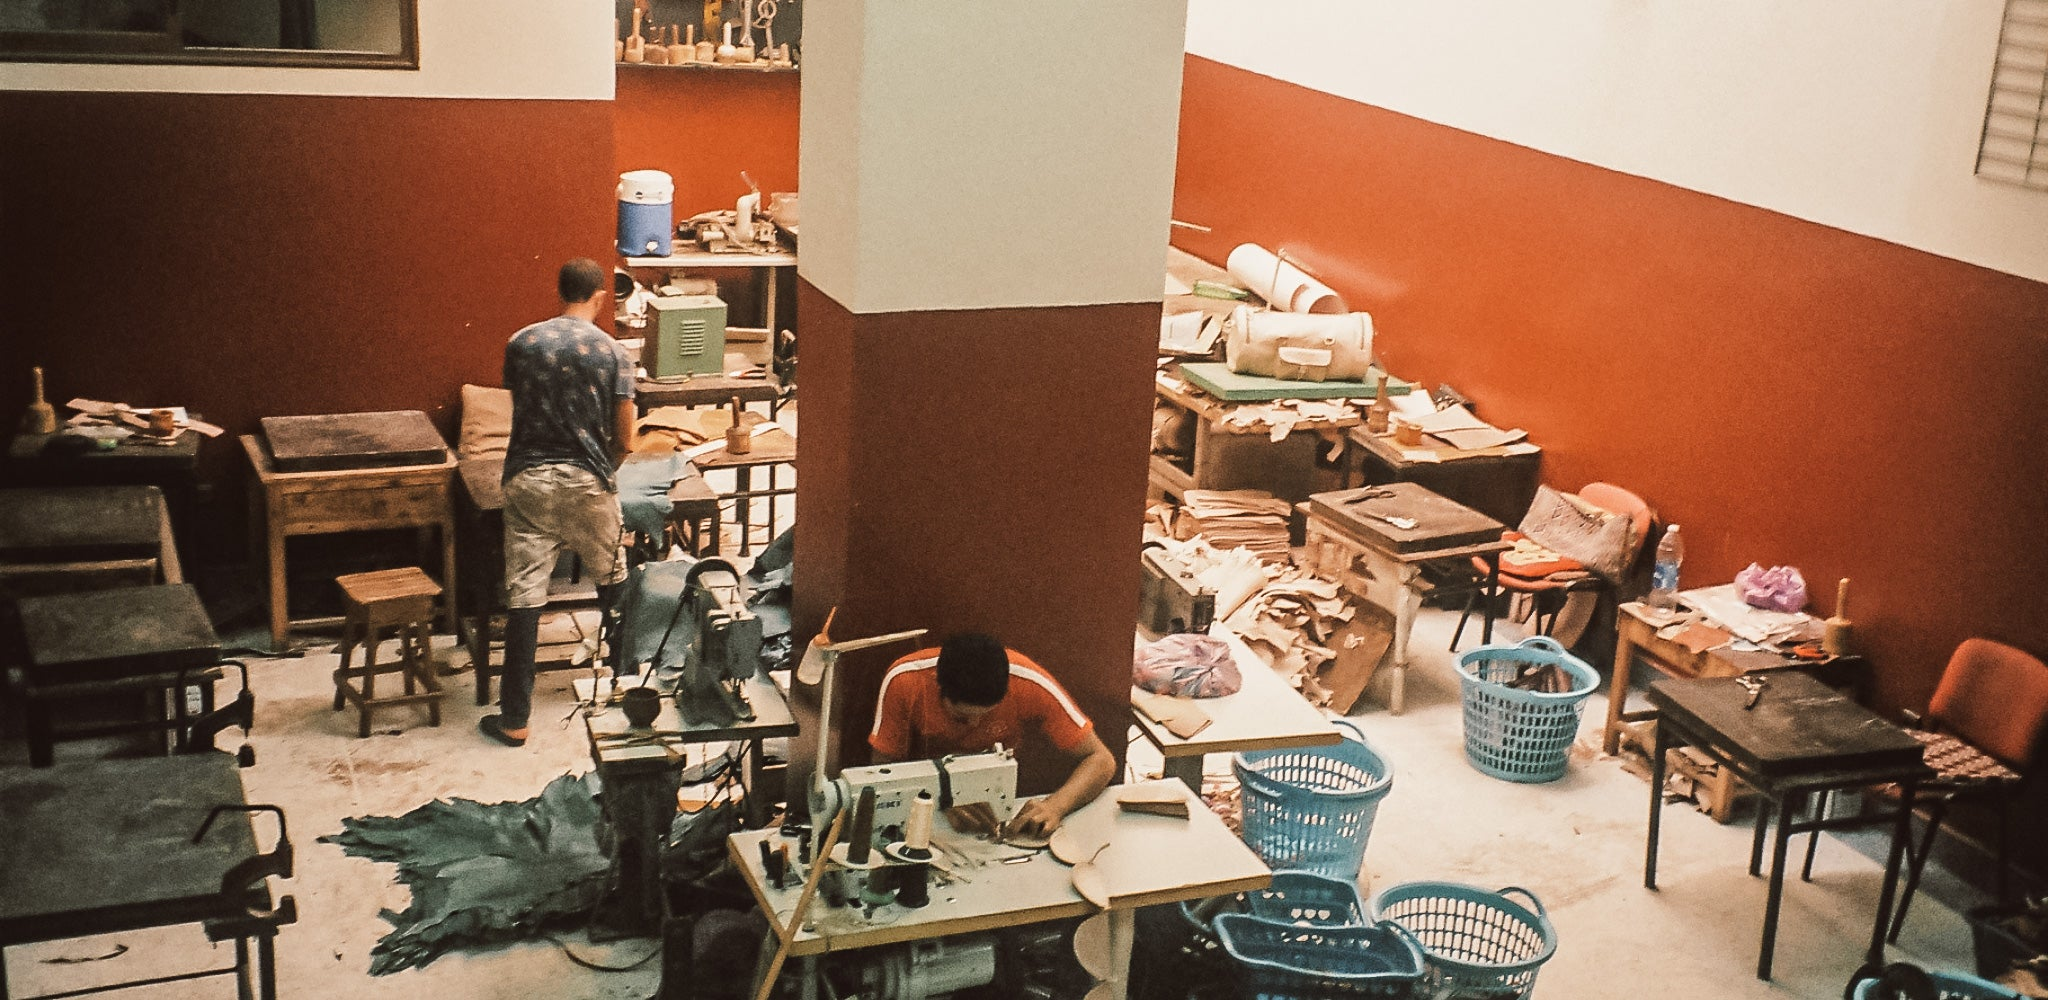 Our Moroccan Leather artisans in Marrakech